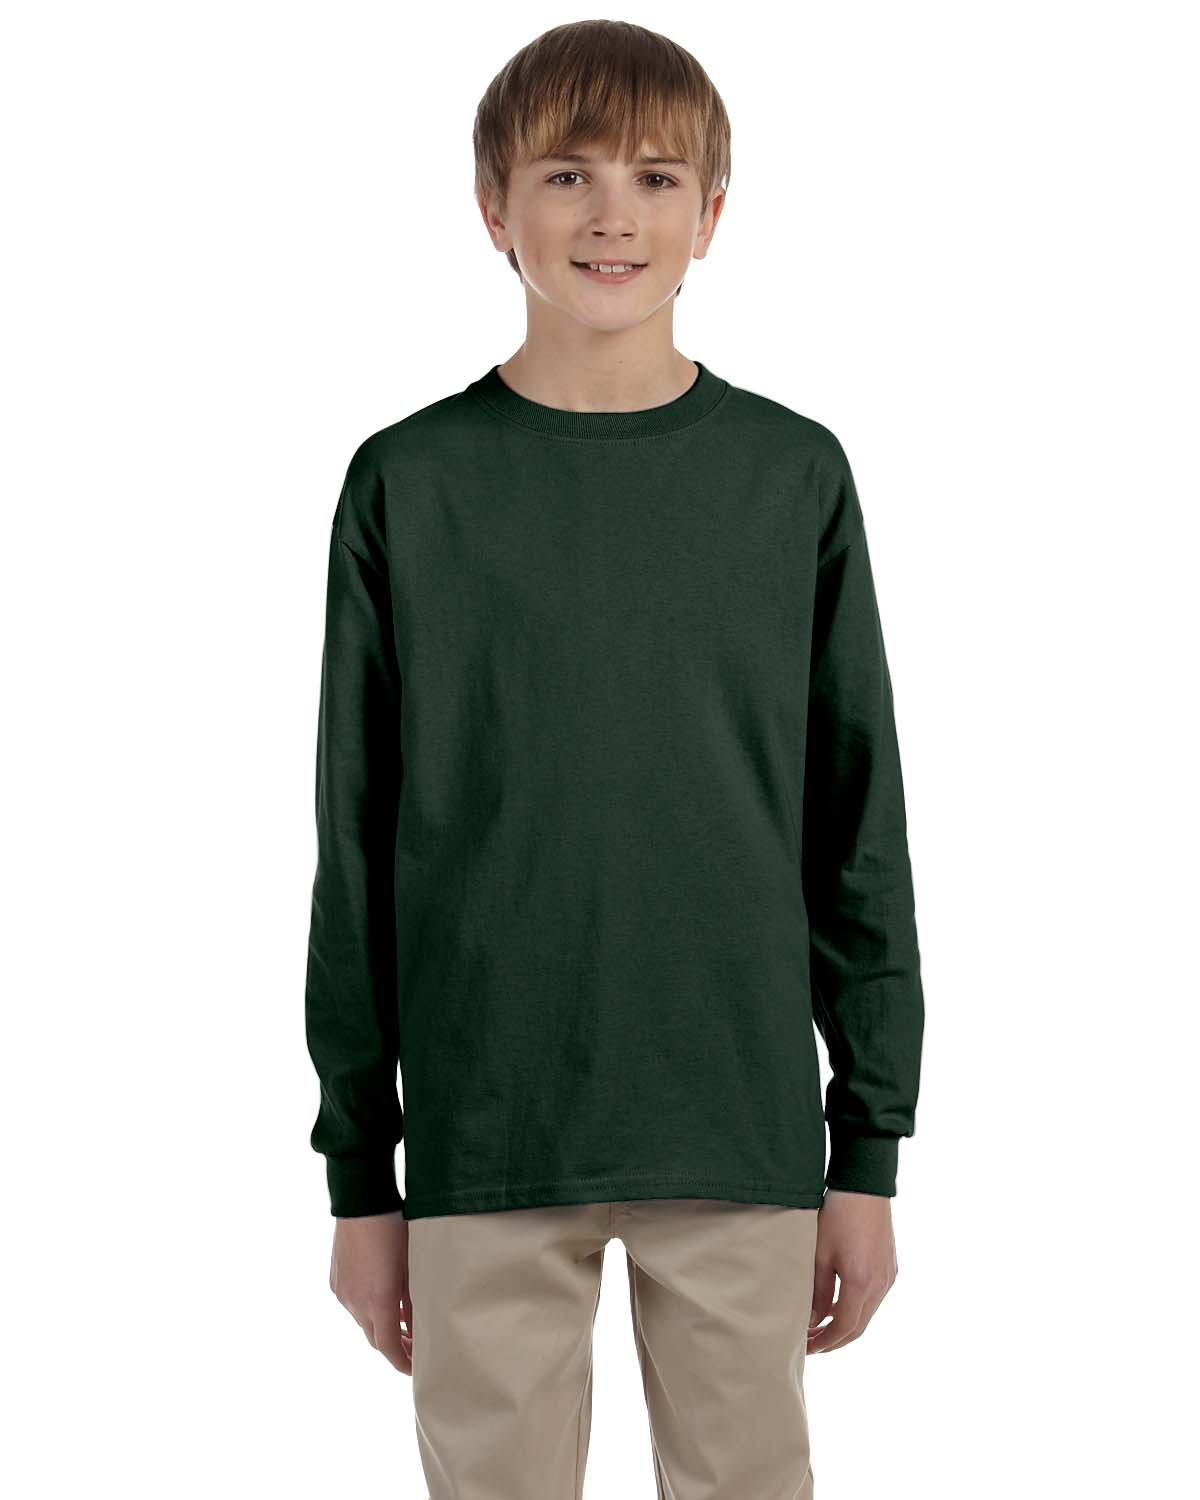 Youth 5.6 oz. DRI-POWER® ACTIVE Long-Sleeve T-Shirt